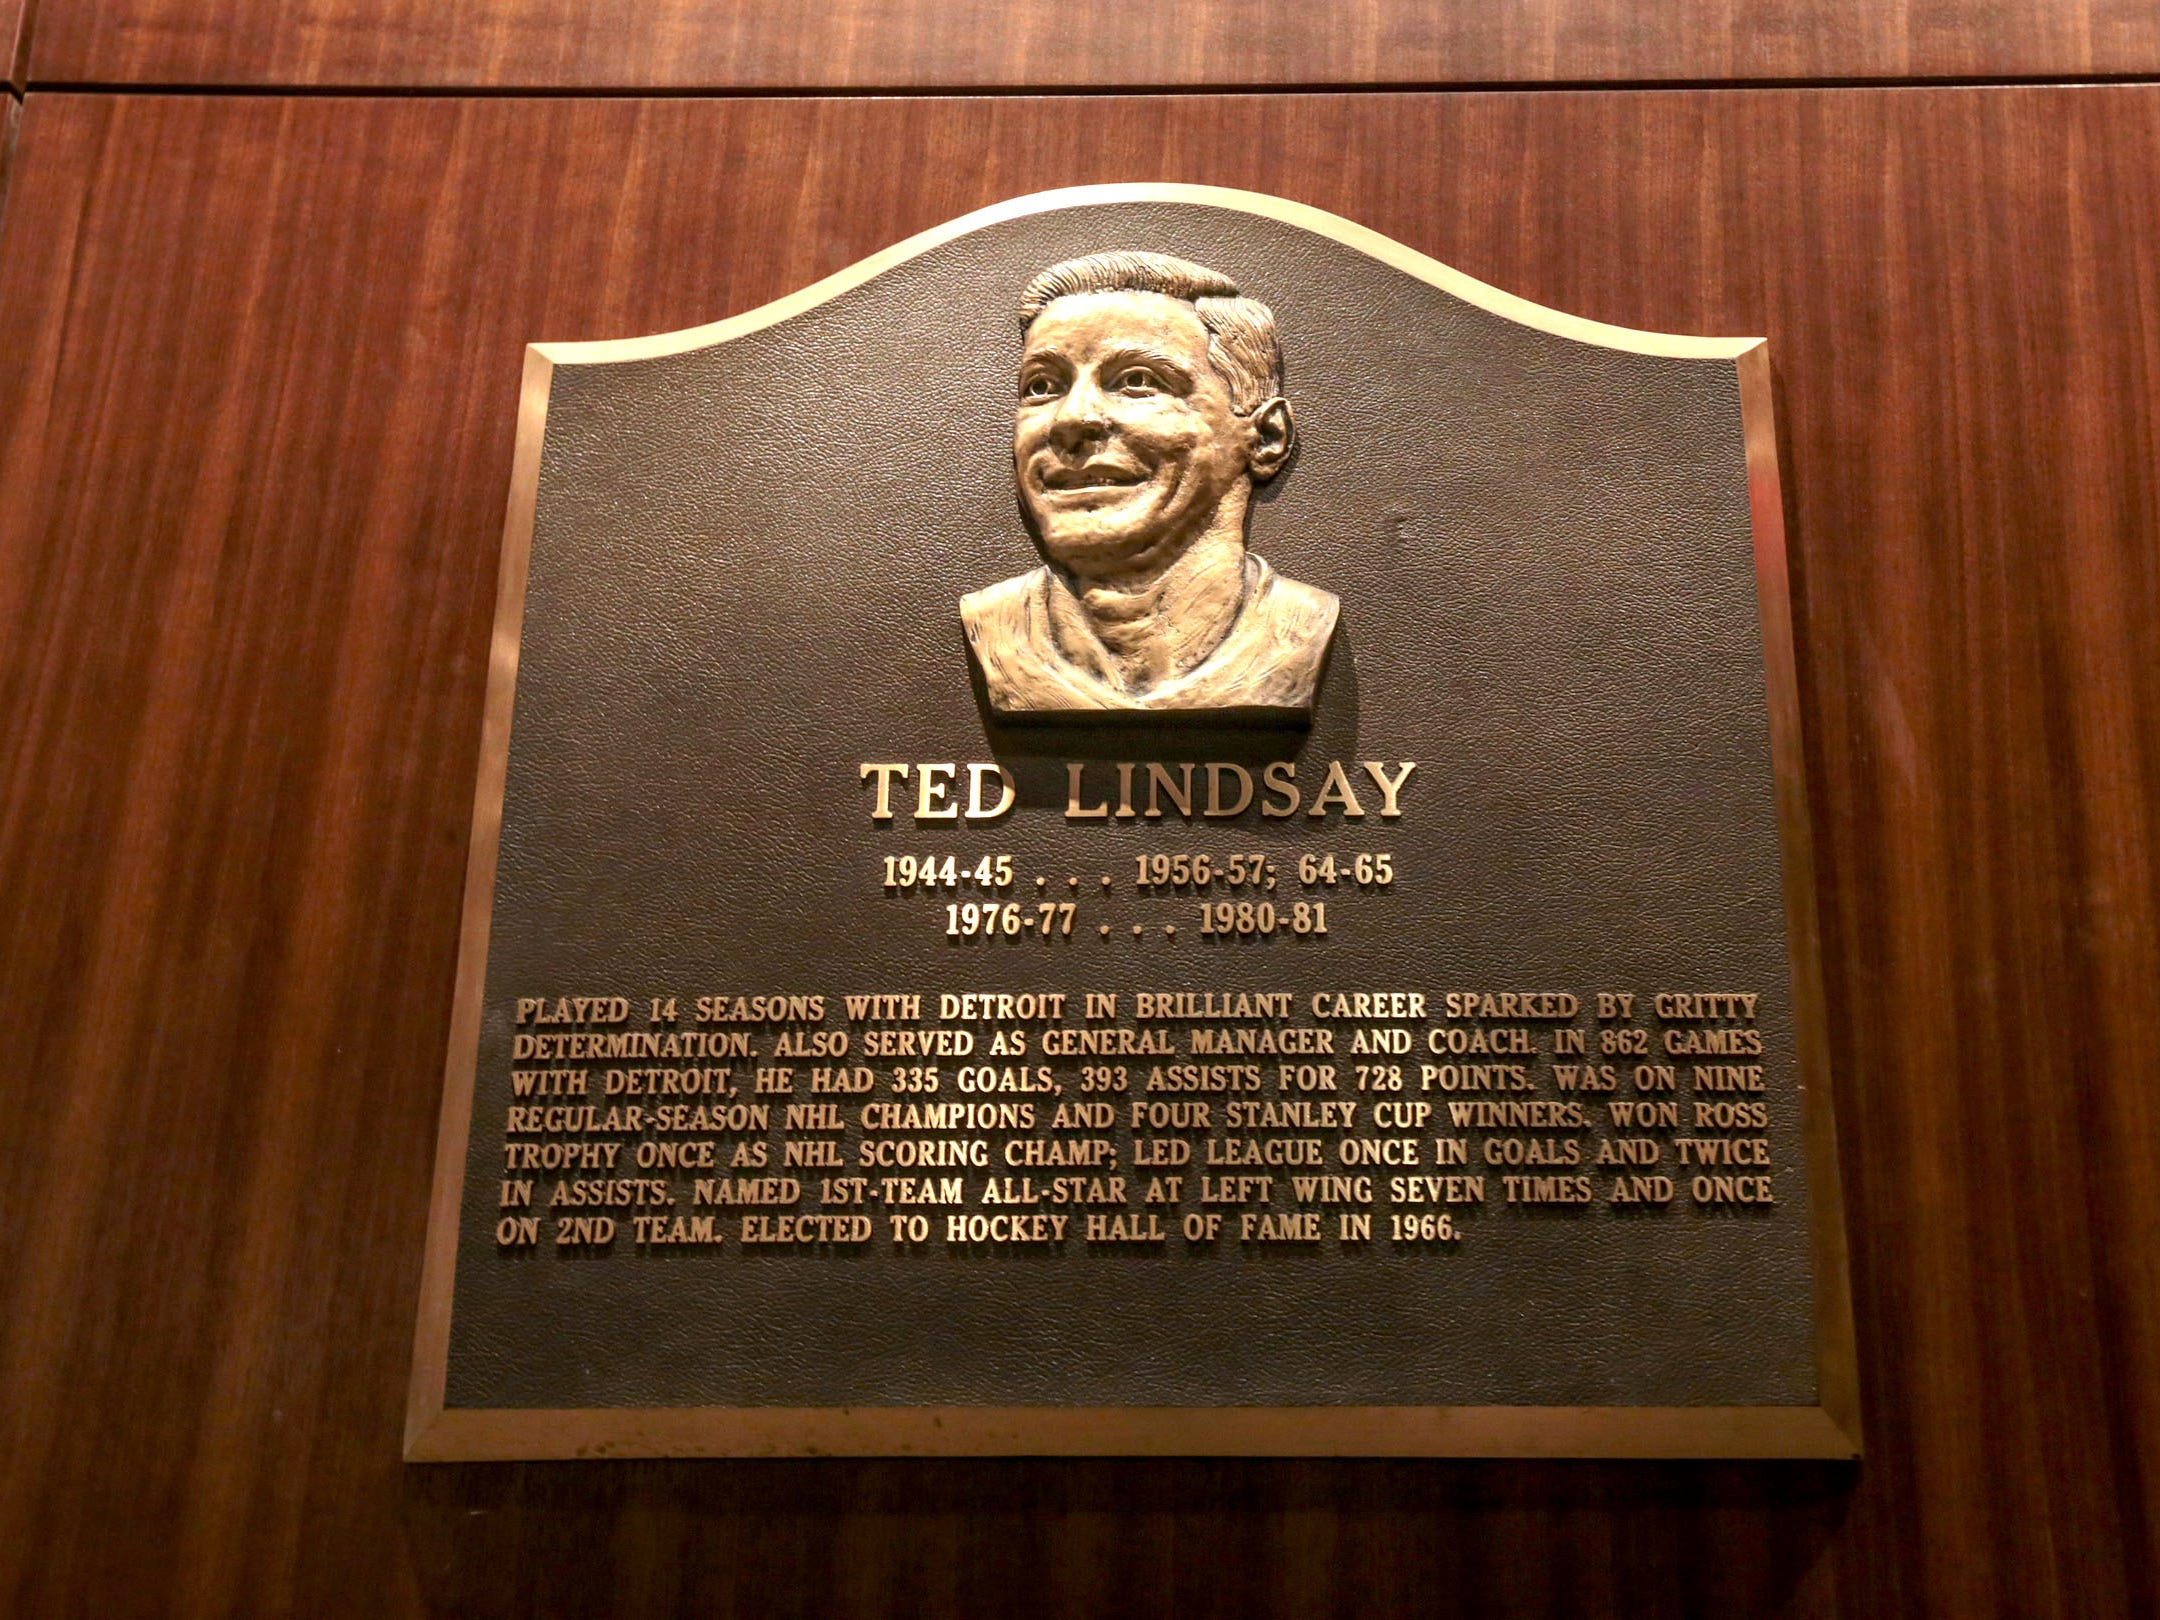 A plaque of former Detroit Red Wings player Ted Lindsay is seen hanging in a hallway off of the players lounge area during a media tour of the Little Caesars Arena in downtown Detroit in September 2017.